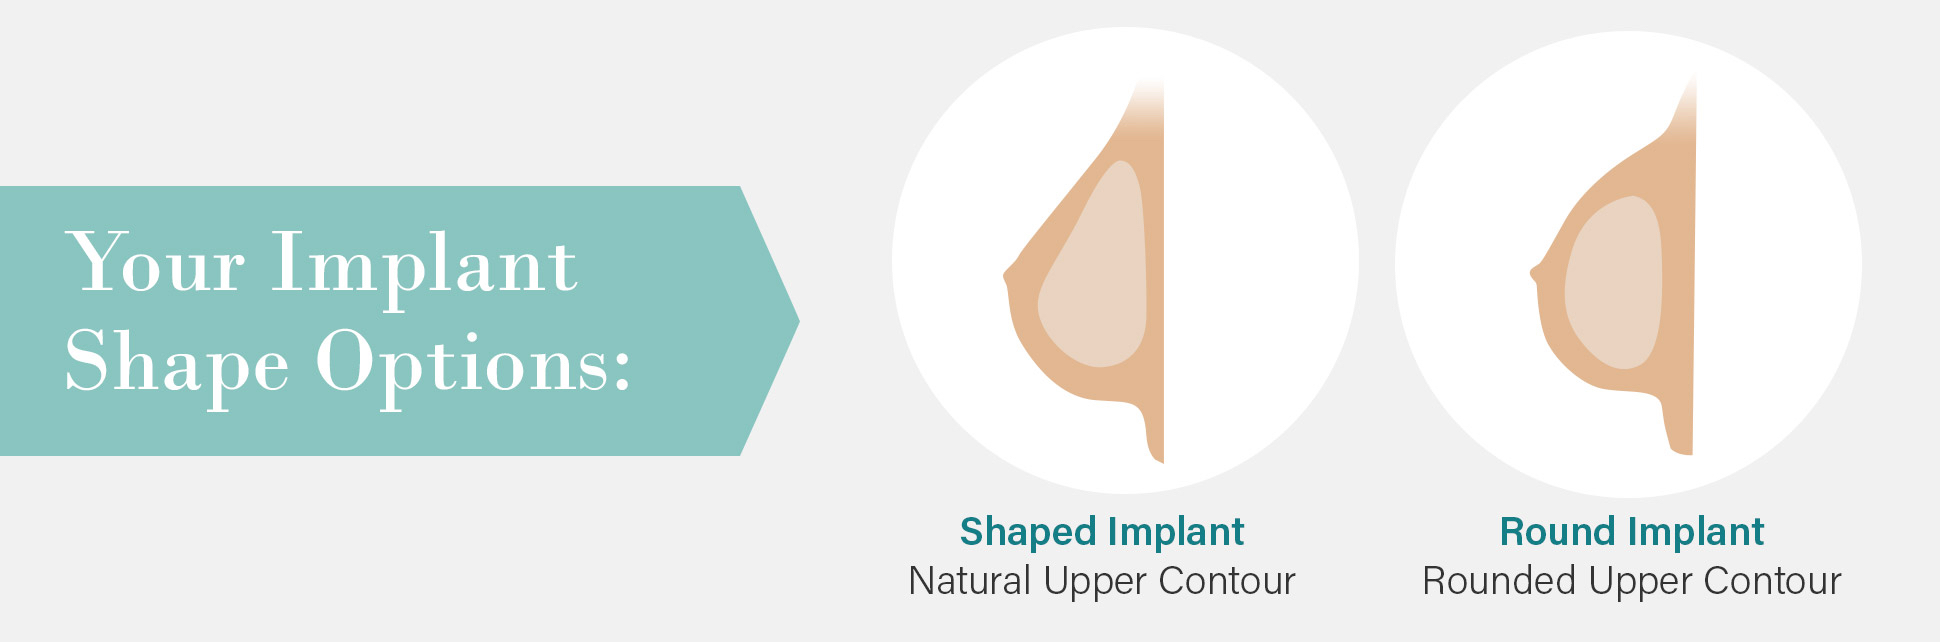 Your implant shape options